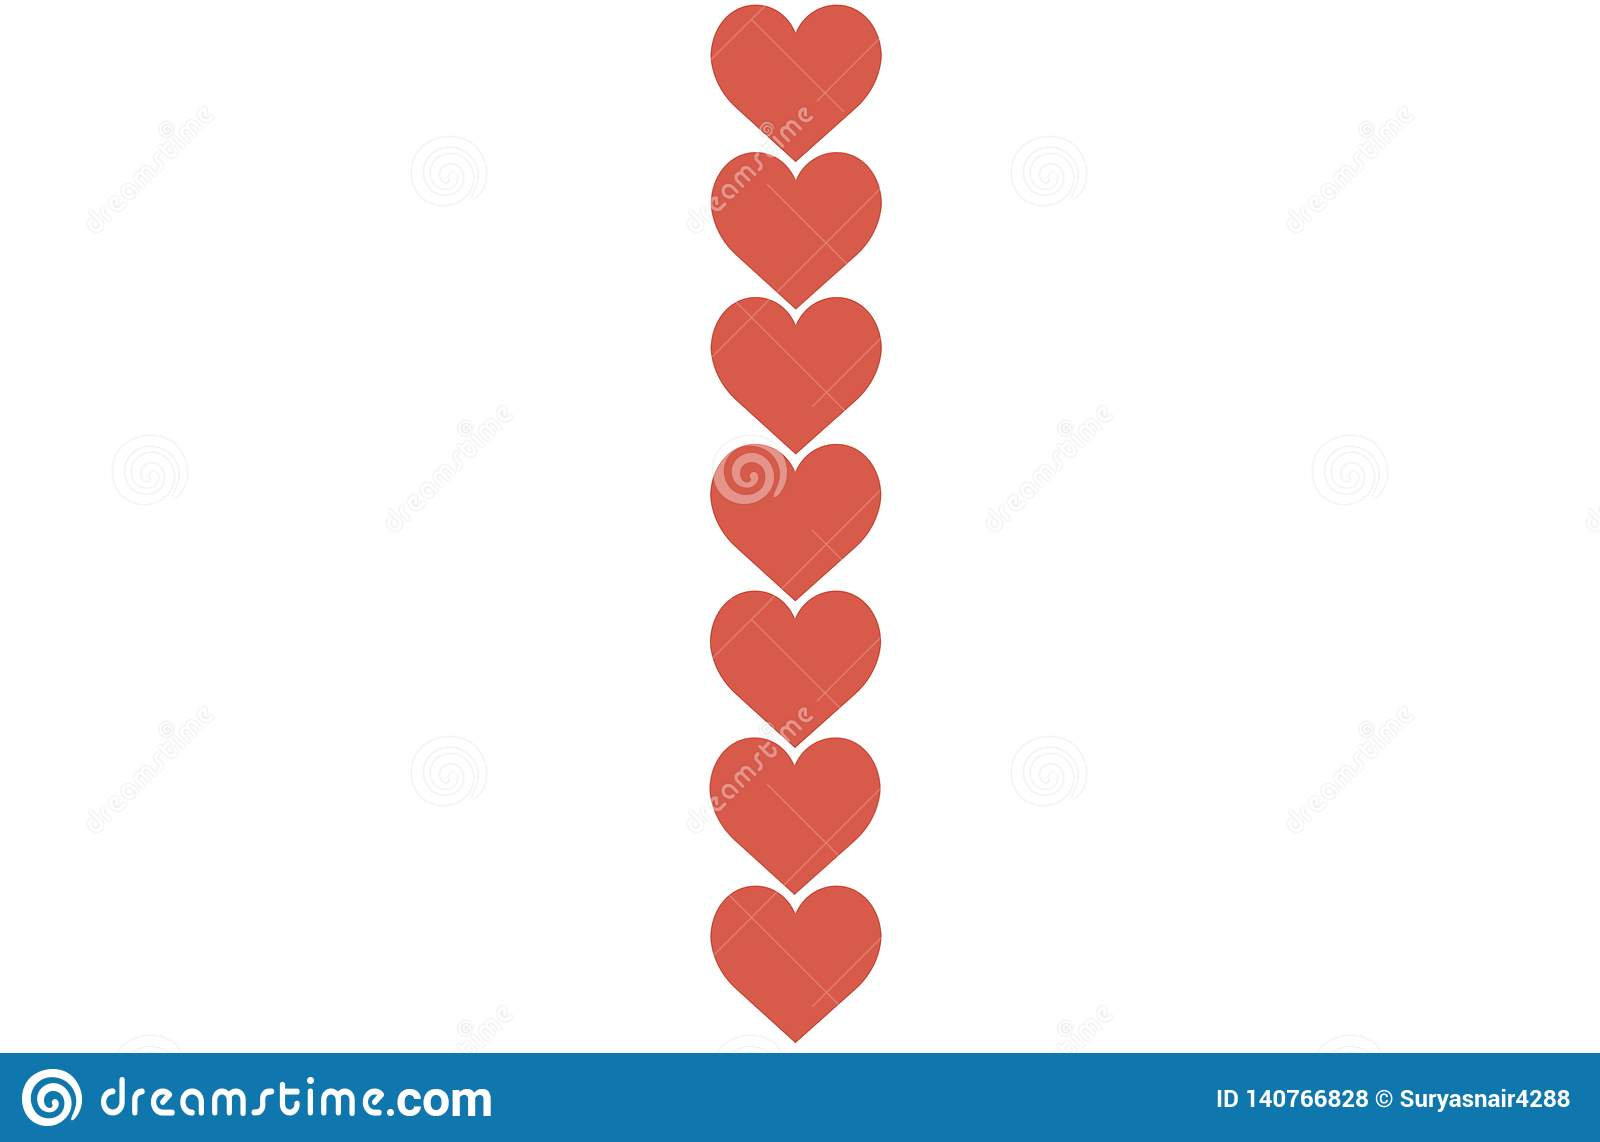 Red Hearts Design on White Background. Love, Heart, Valentine s Day. Can be used for Articles, Printing, Illustration purpose,